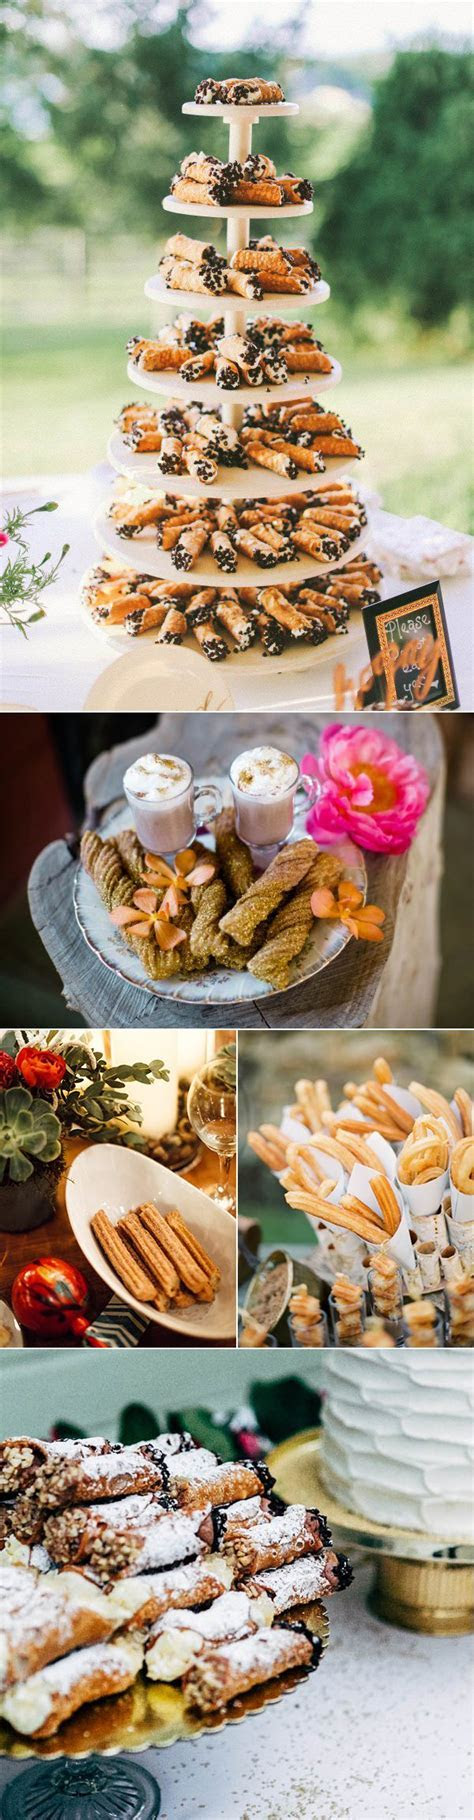 5 Dessert Ideas That Will Make You Reconsider Your Wedding